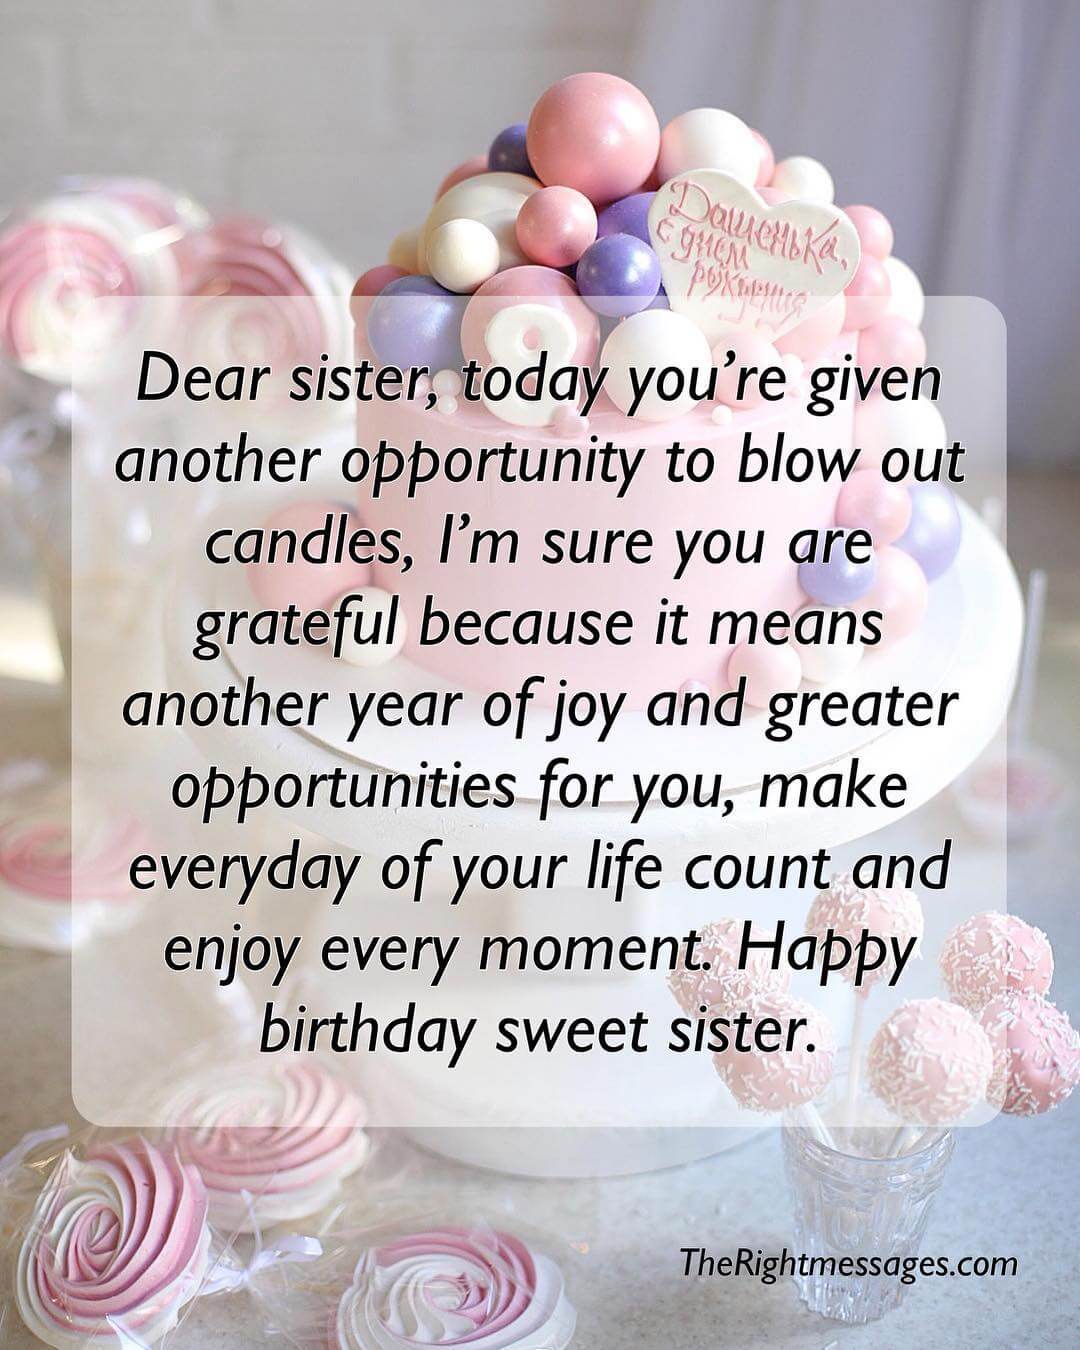 Happy birthday messages wishes quotes for sister the right messages happy birthday wishes for sister m4hsunfo